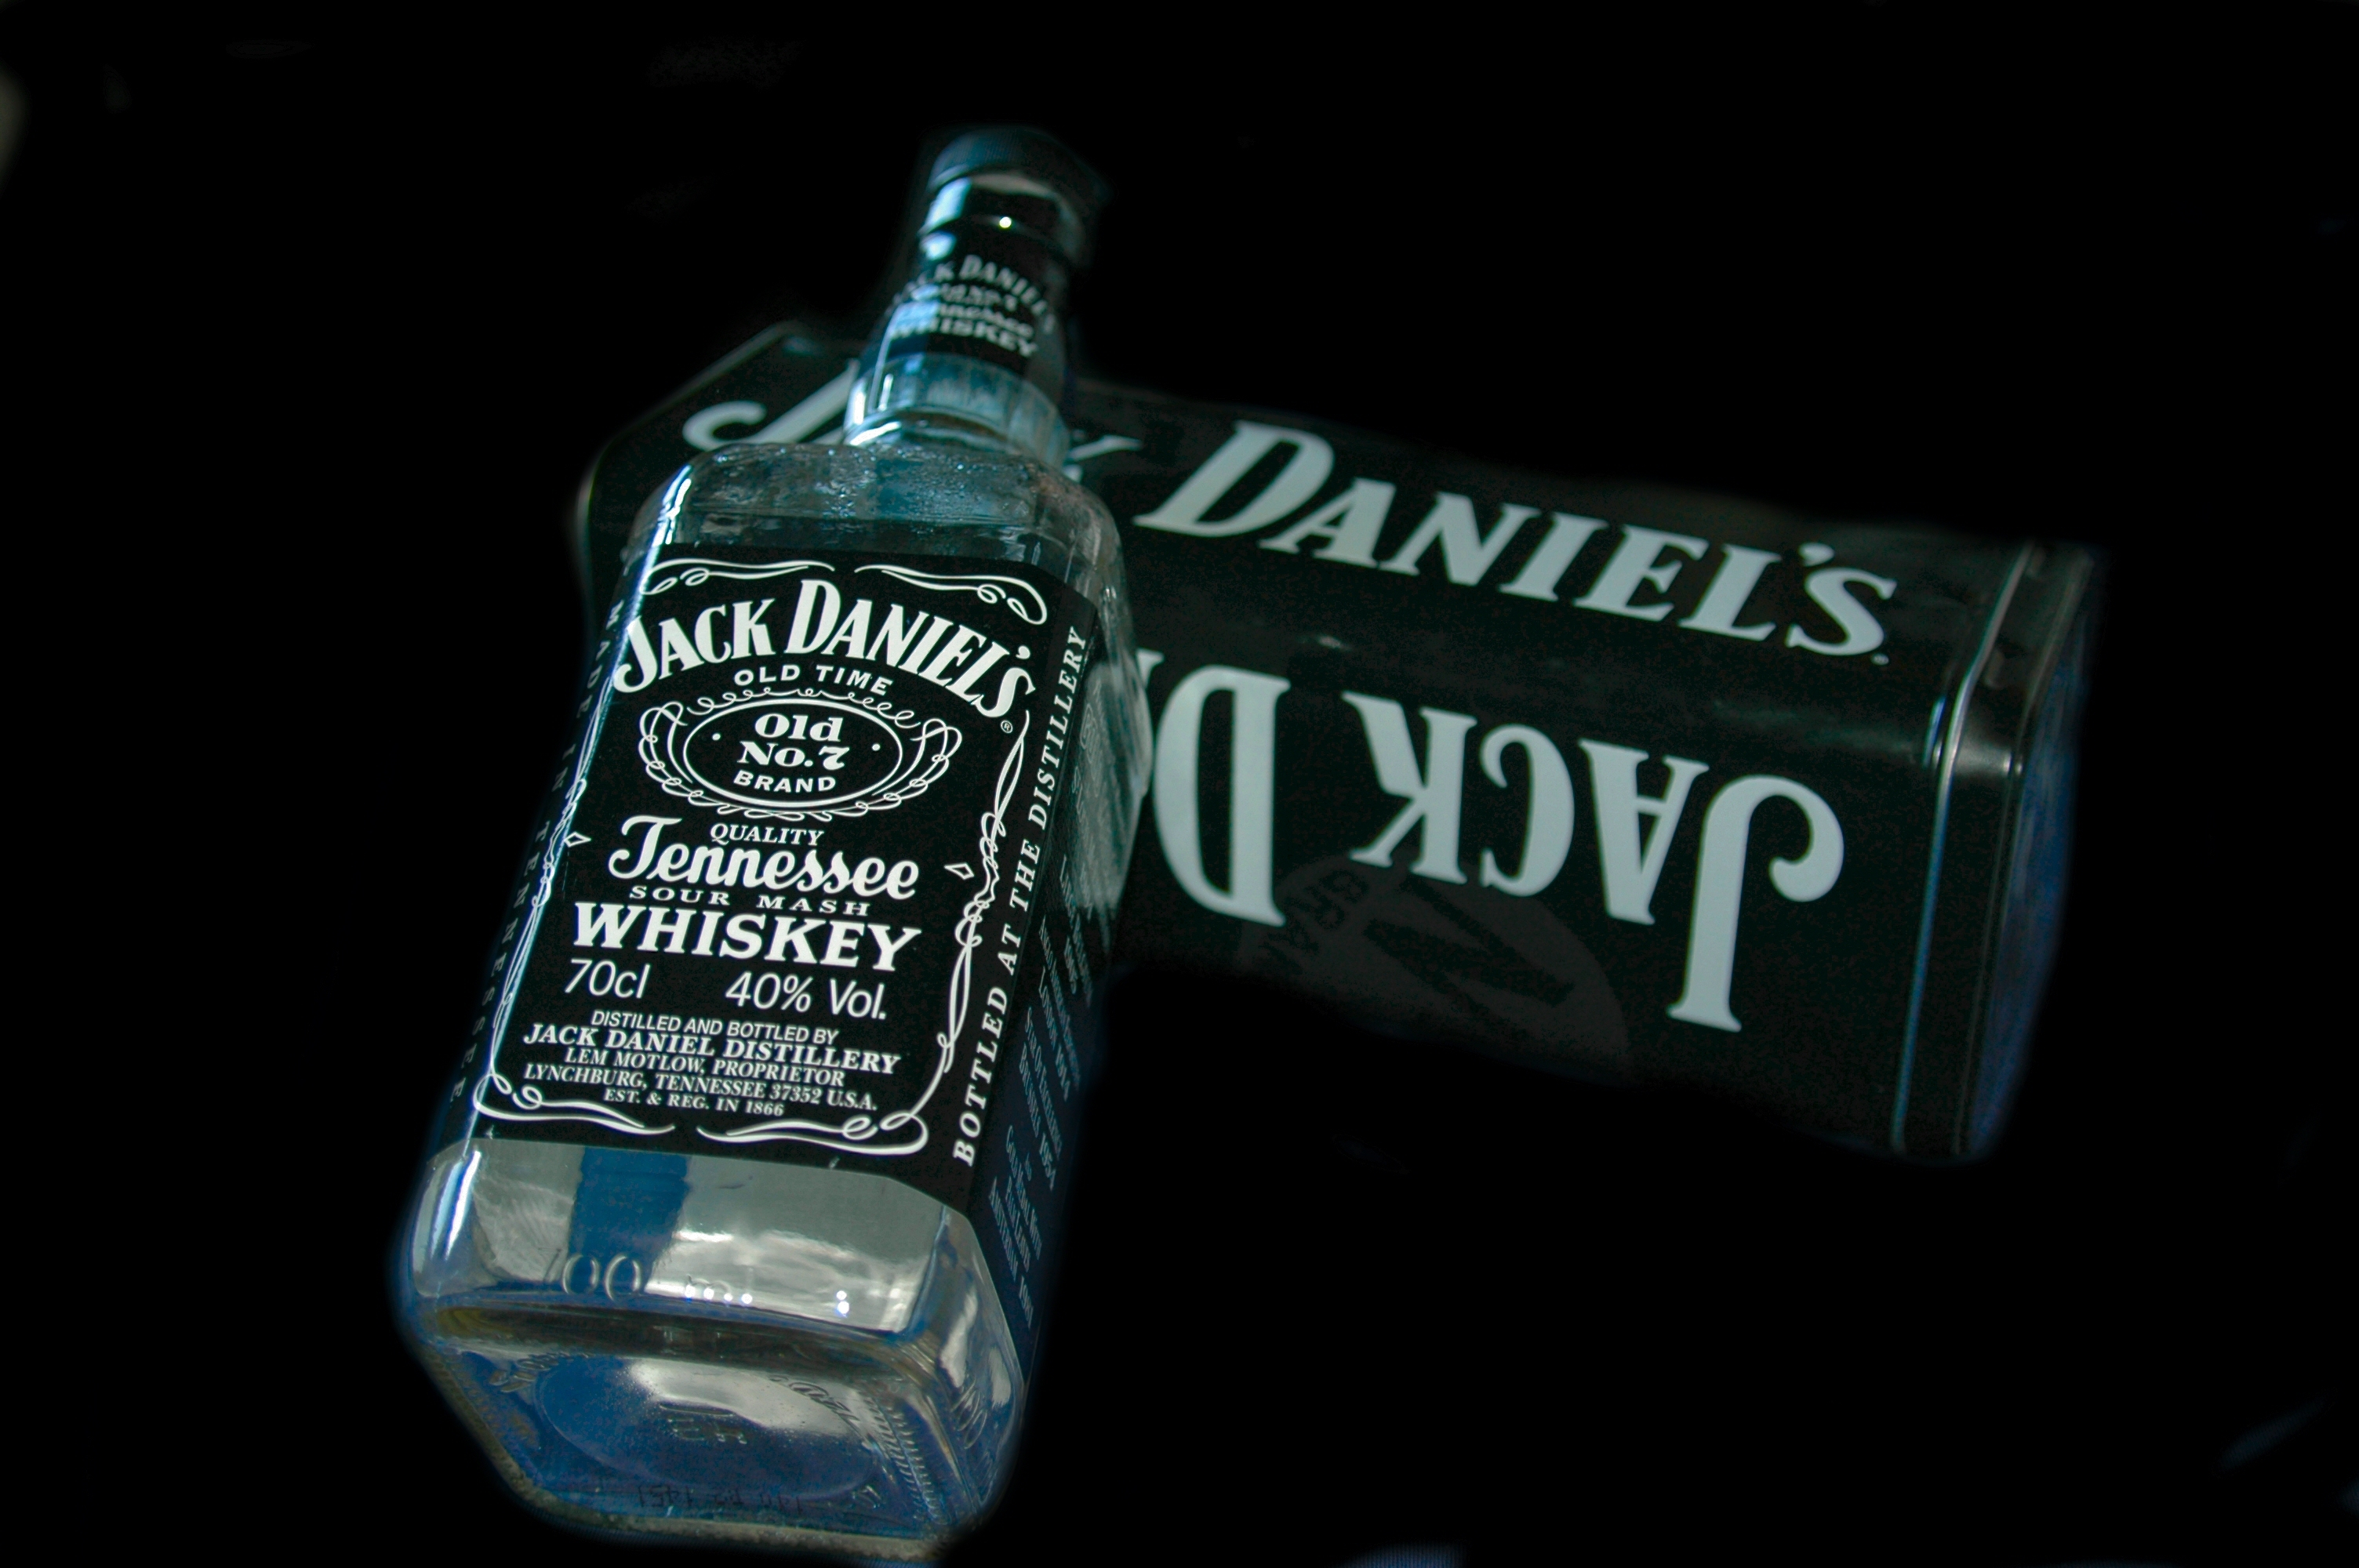 Jack daniels whiskey booze HD Wallpaper